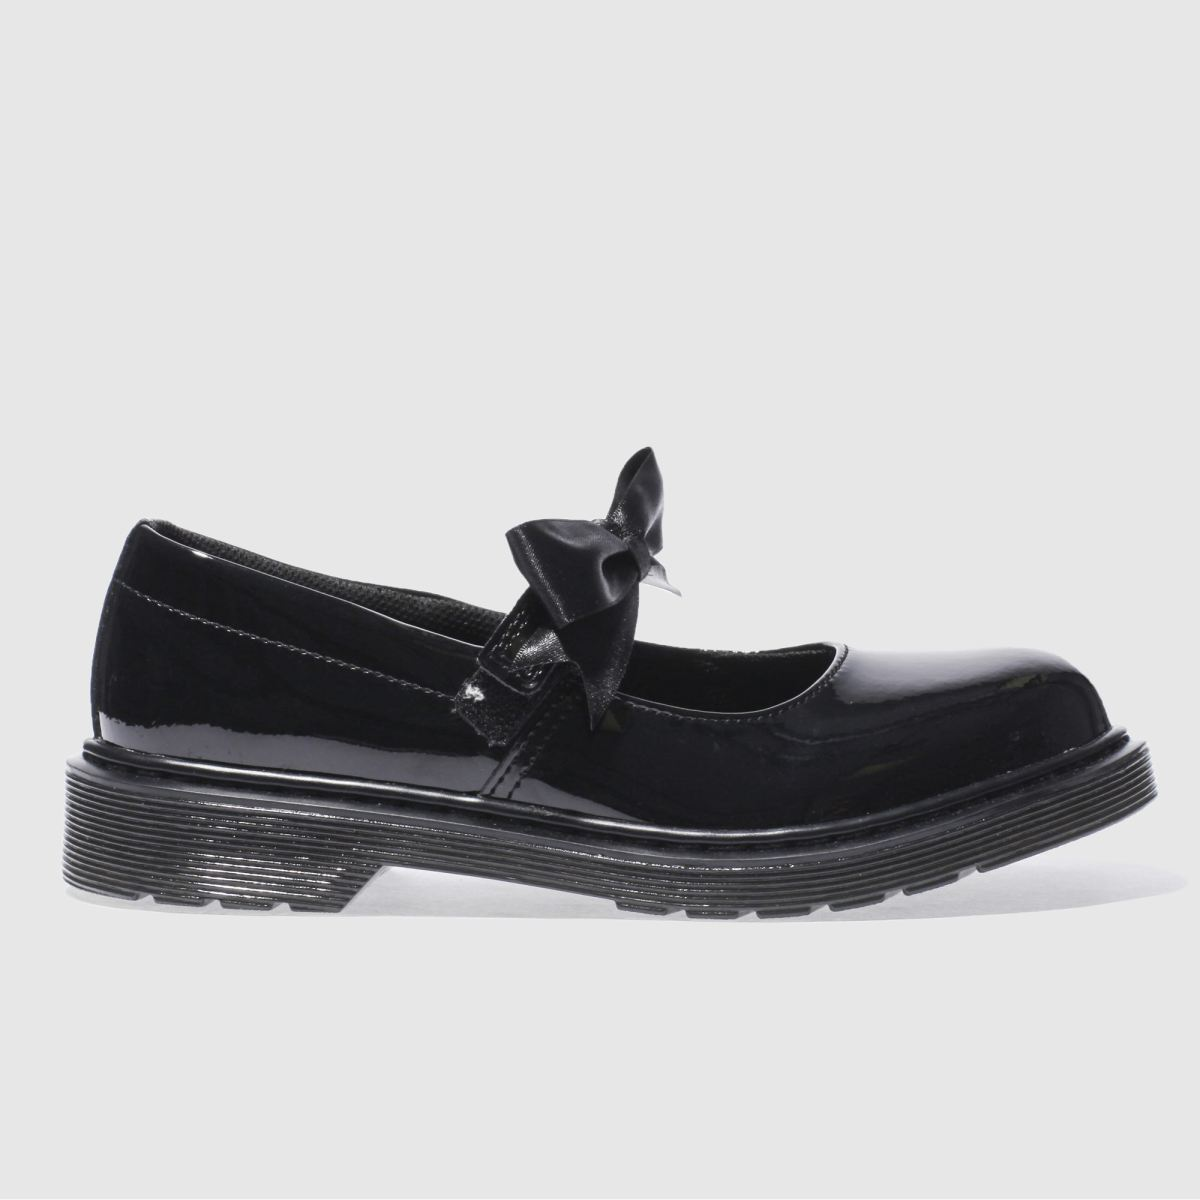 Dr Martens Black Maccy Ii Girls Youth Shoes